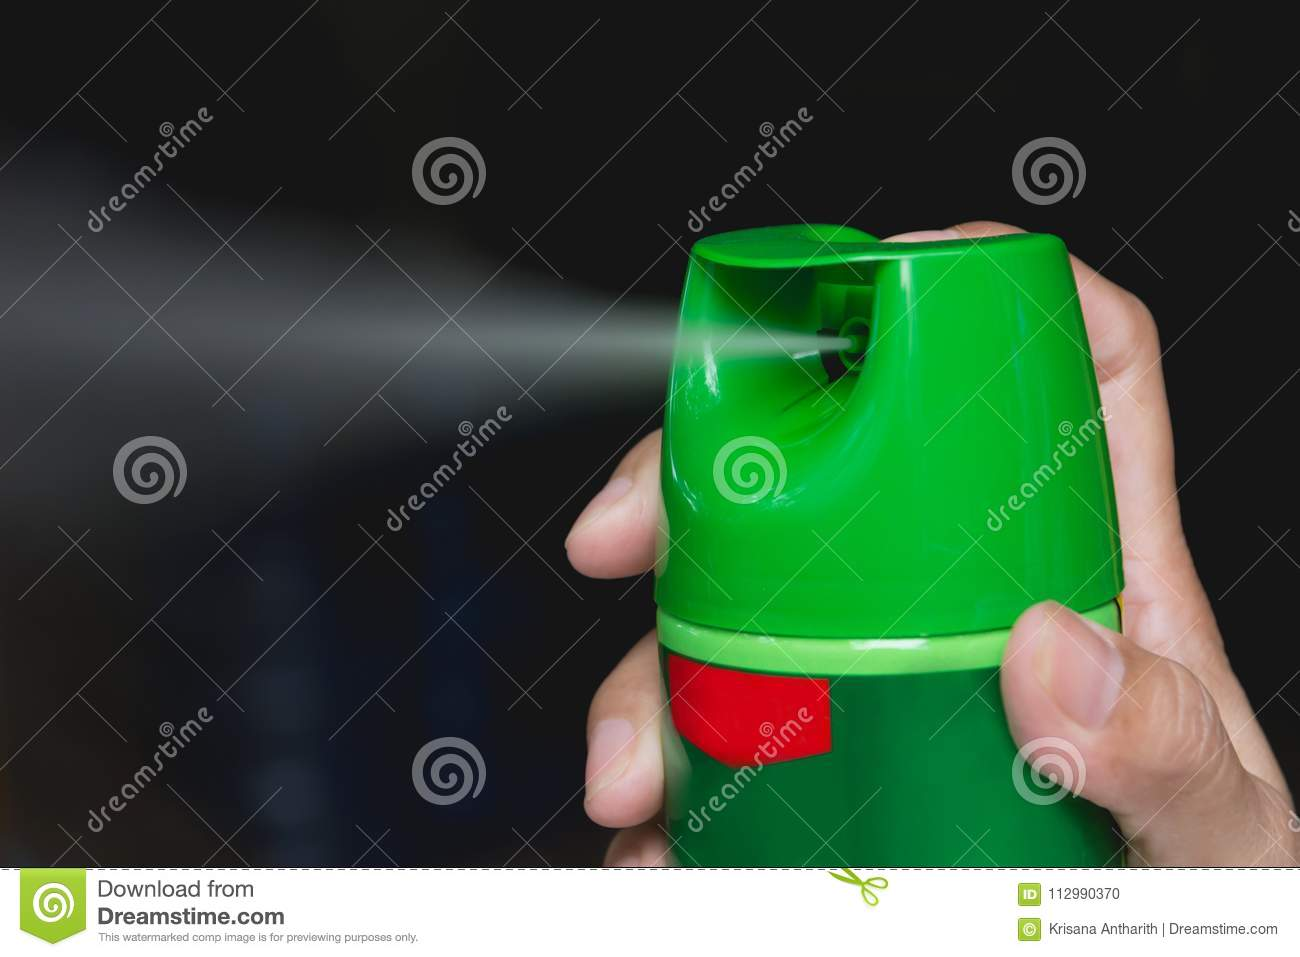 Hand holding mosquito spray. Human using mosquito spray from bot